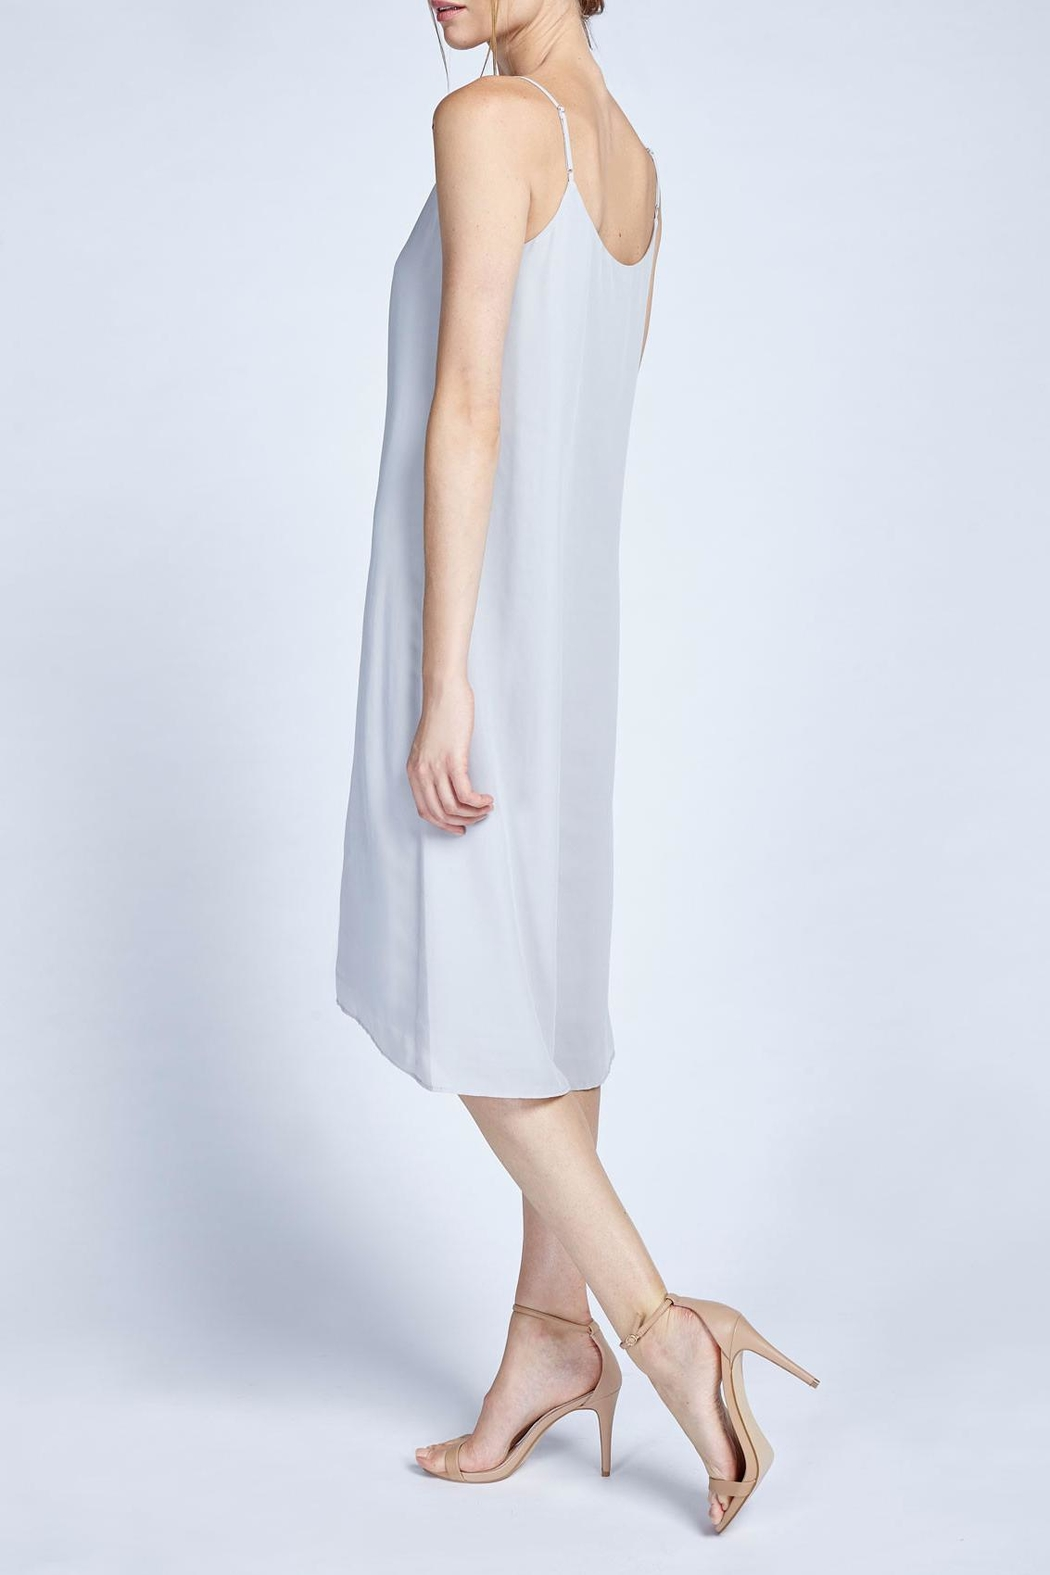 NOEL ASMAR COLLECTIONS Piper Slip Dress - Front Full Image